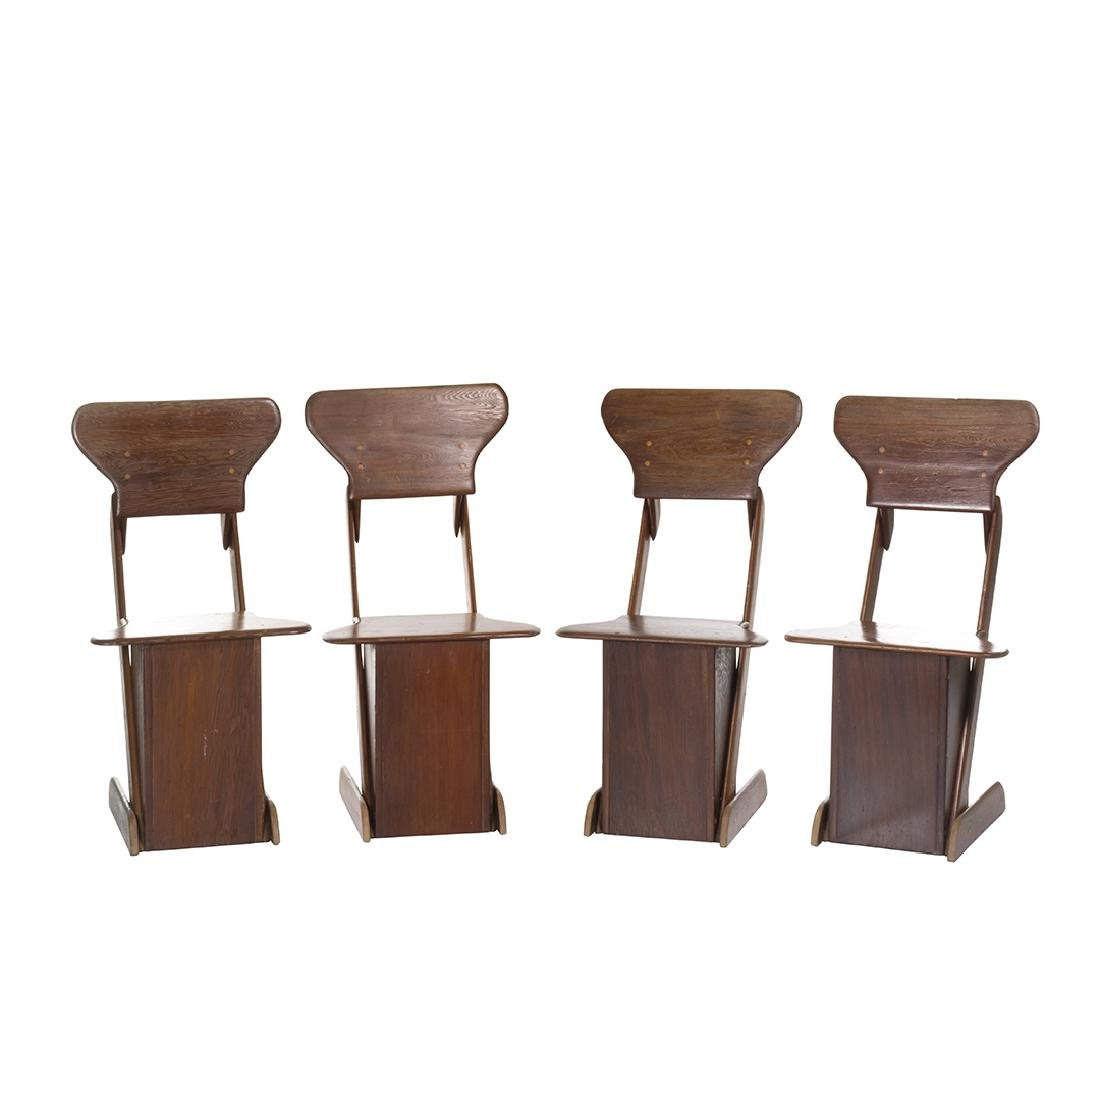 Pine Craft Dining Chairs (4)